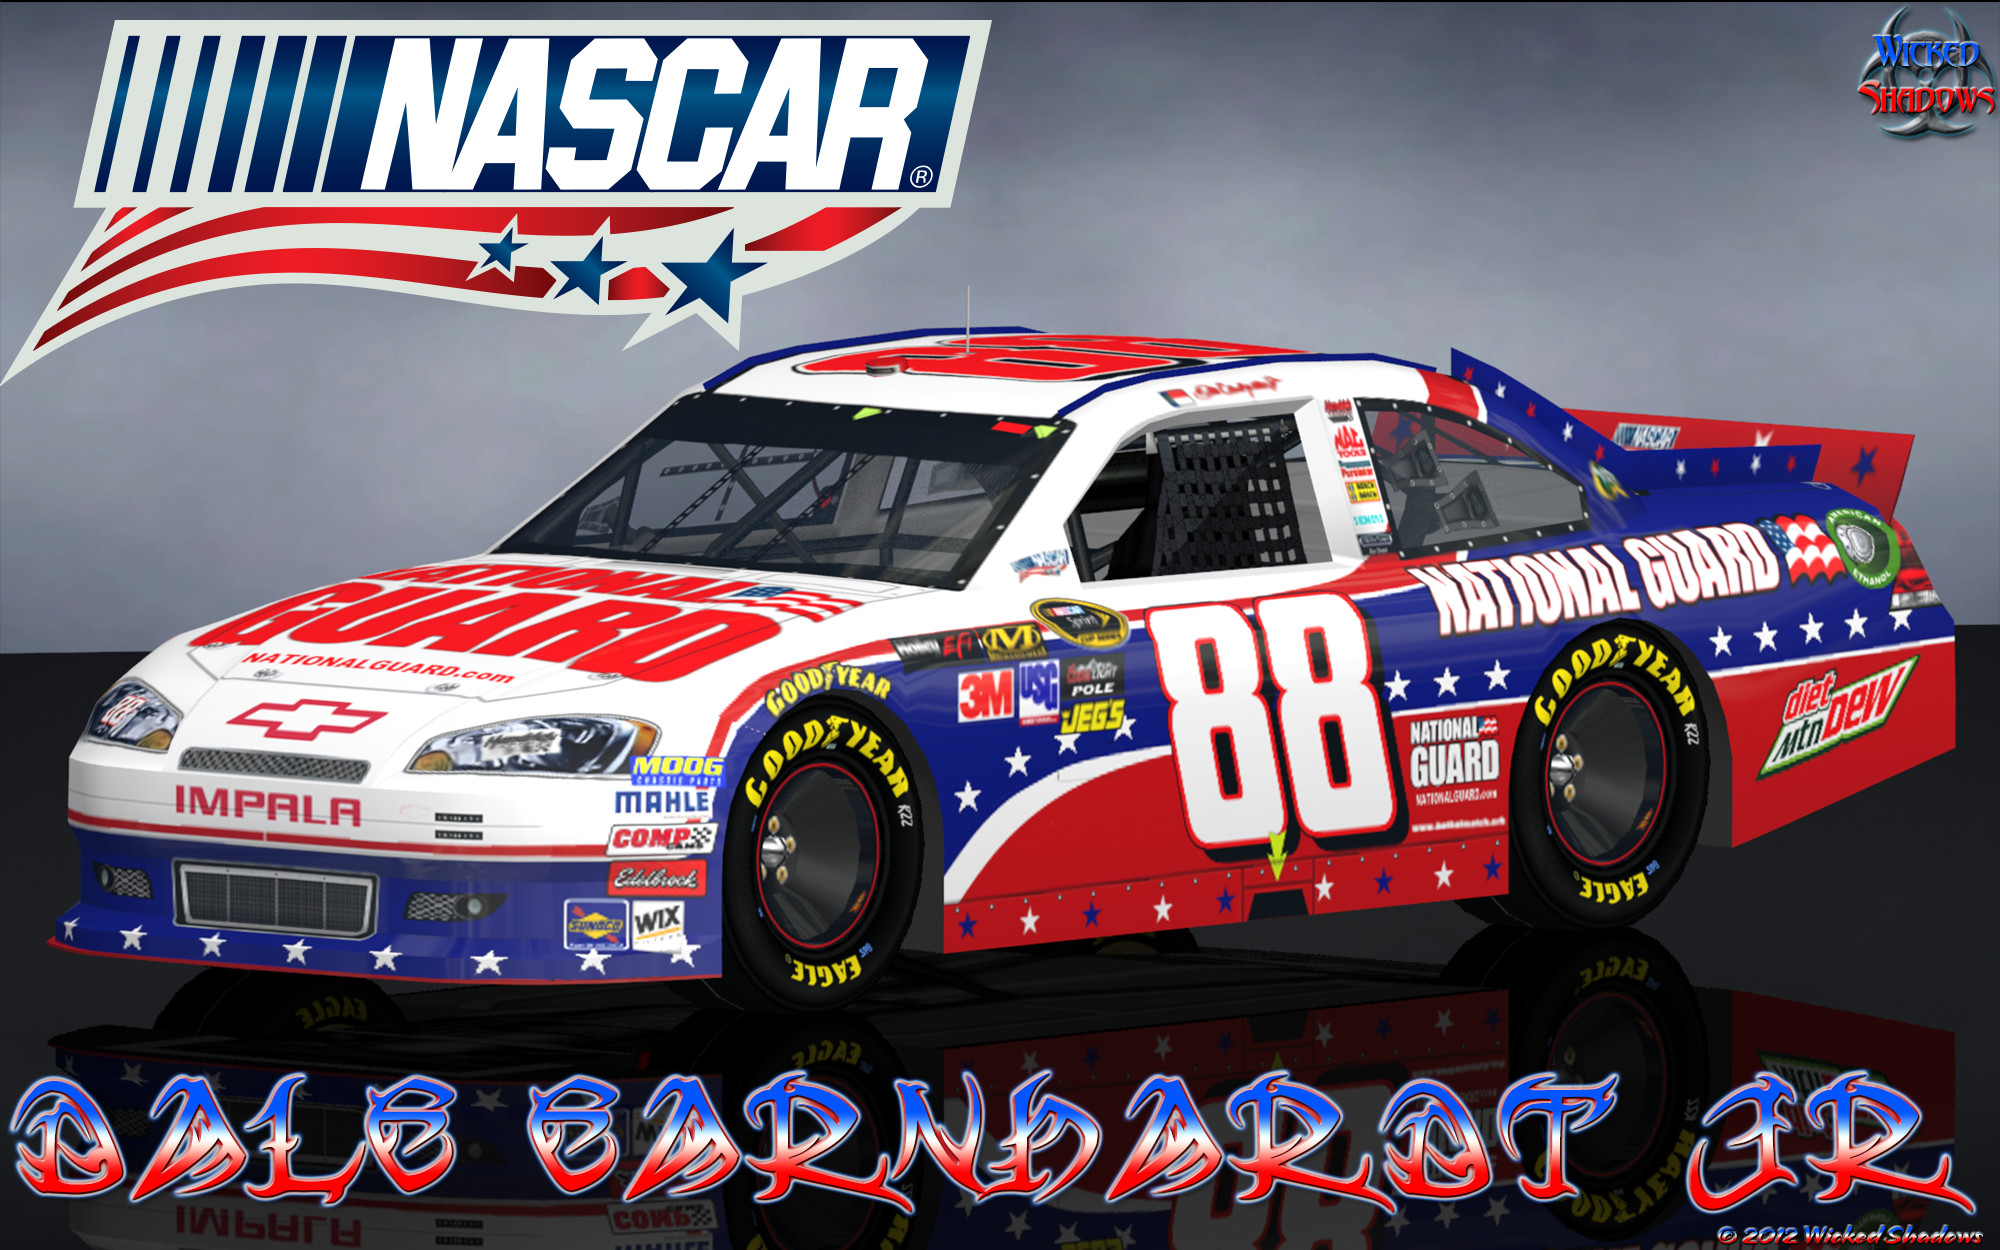 2000x1250 Dale Earnhardt Jr Wallpaper National Guard Dale earnhardt jr nascar